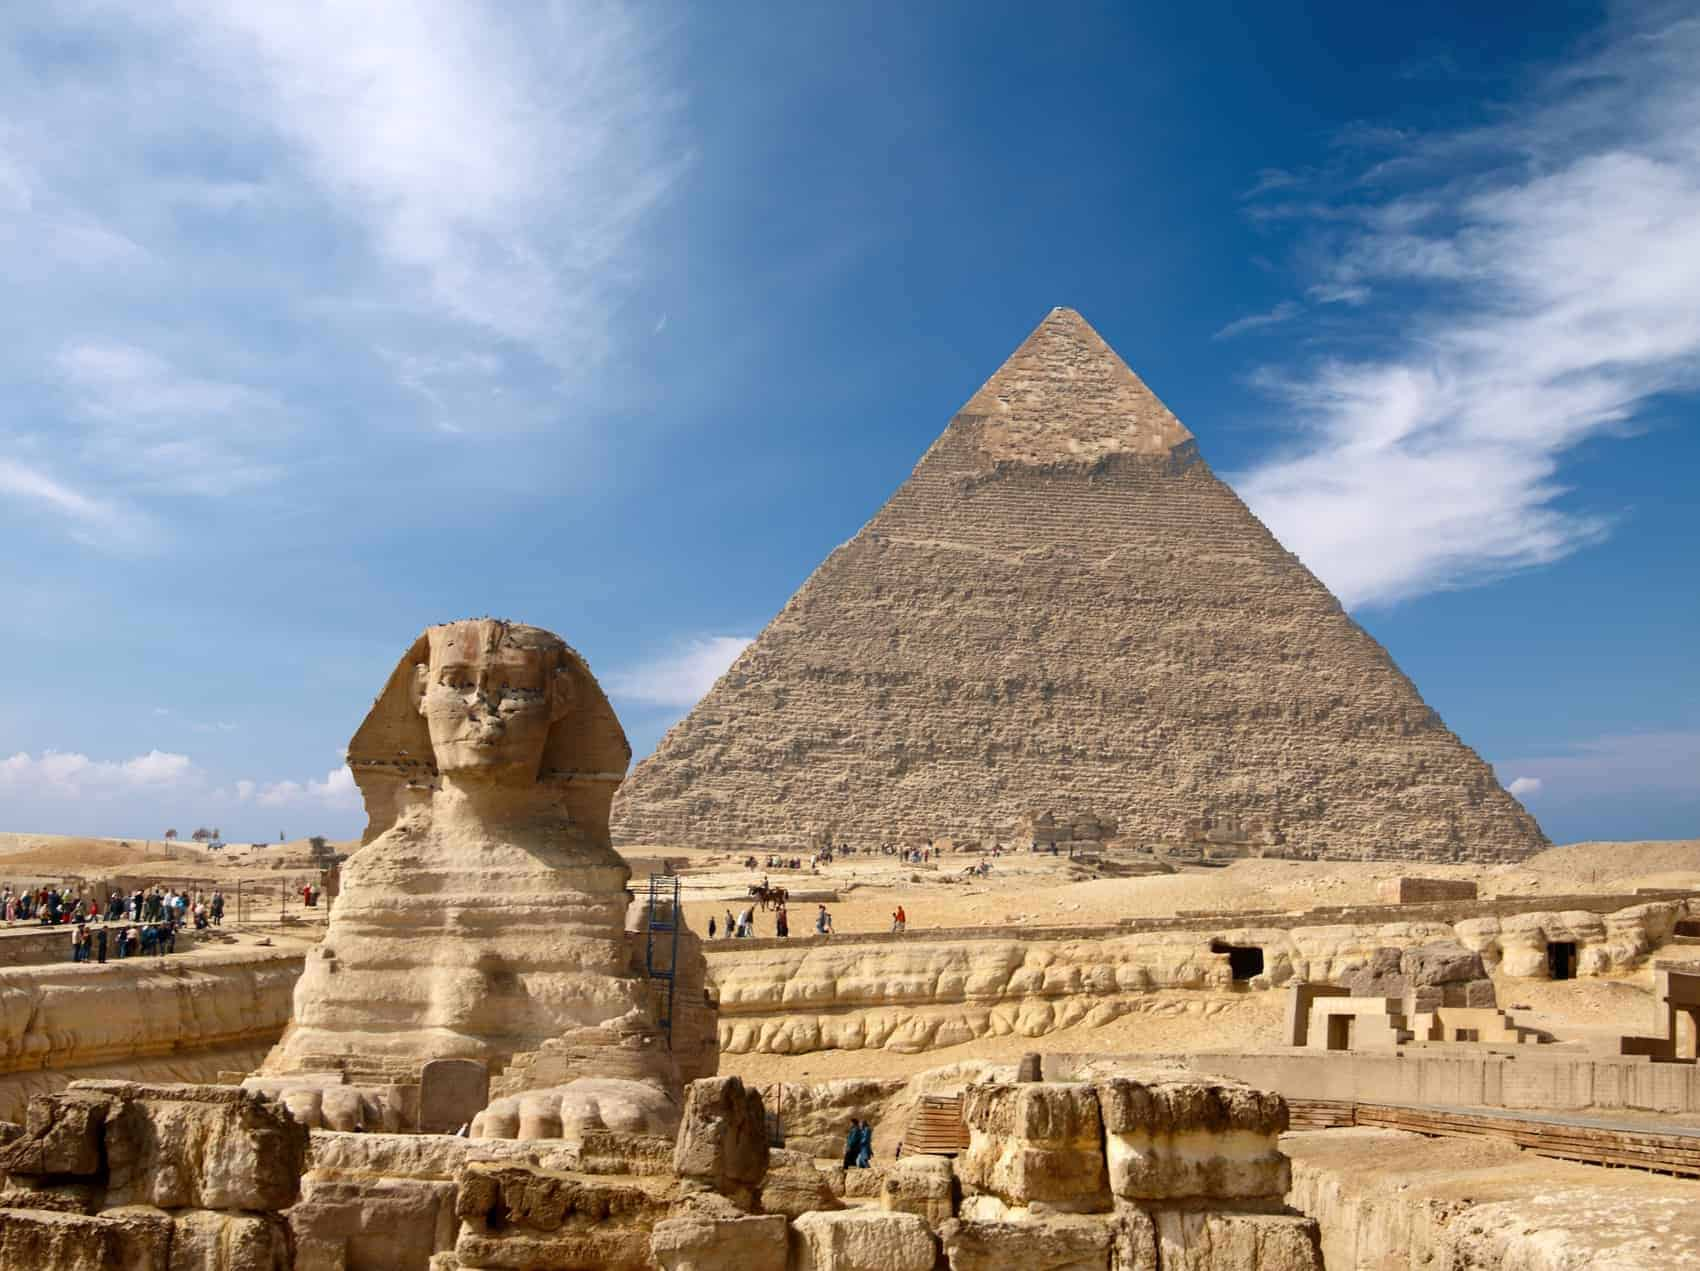 Sphinx and the Great pyramid in Egypt, Giza